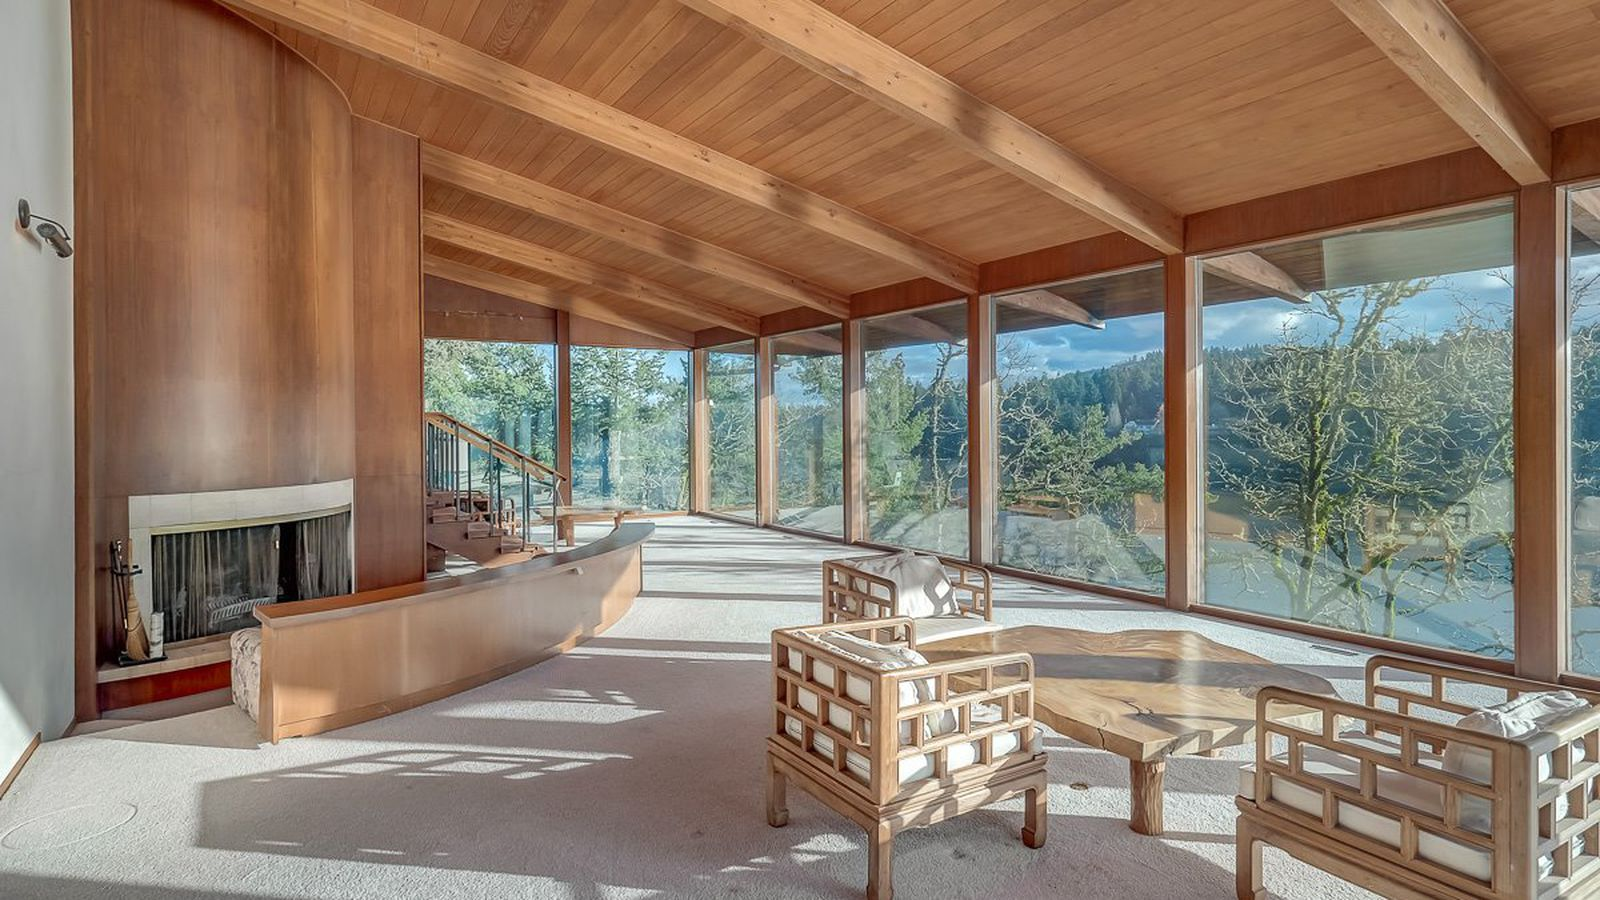 Own a dreamy 1965 lake house with spectacular views curbed for How much does a lake house cost